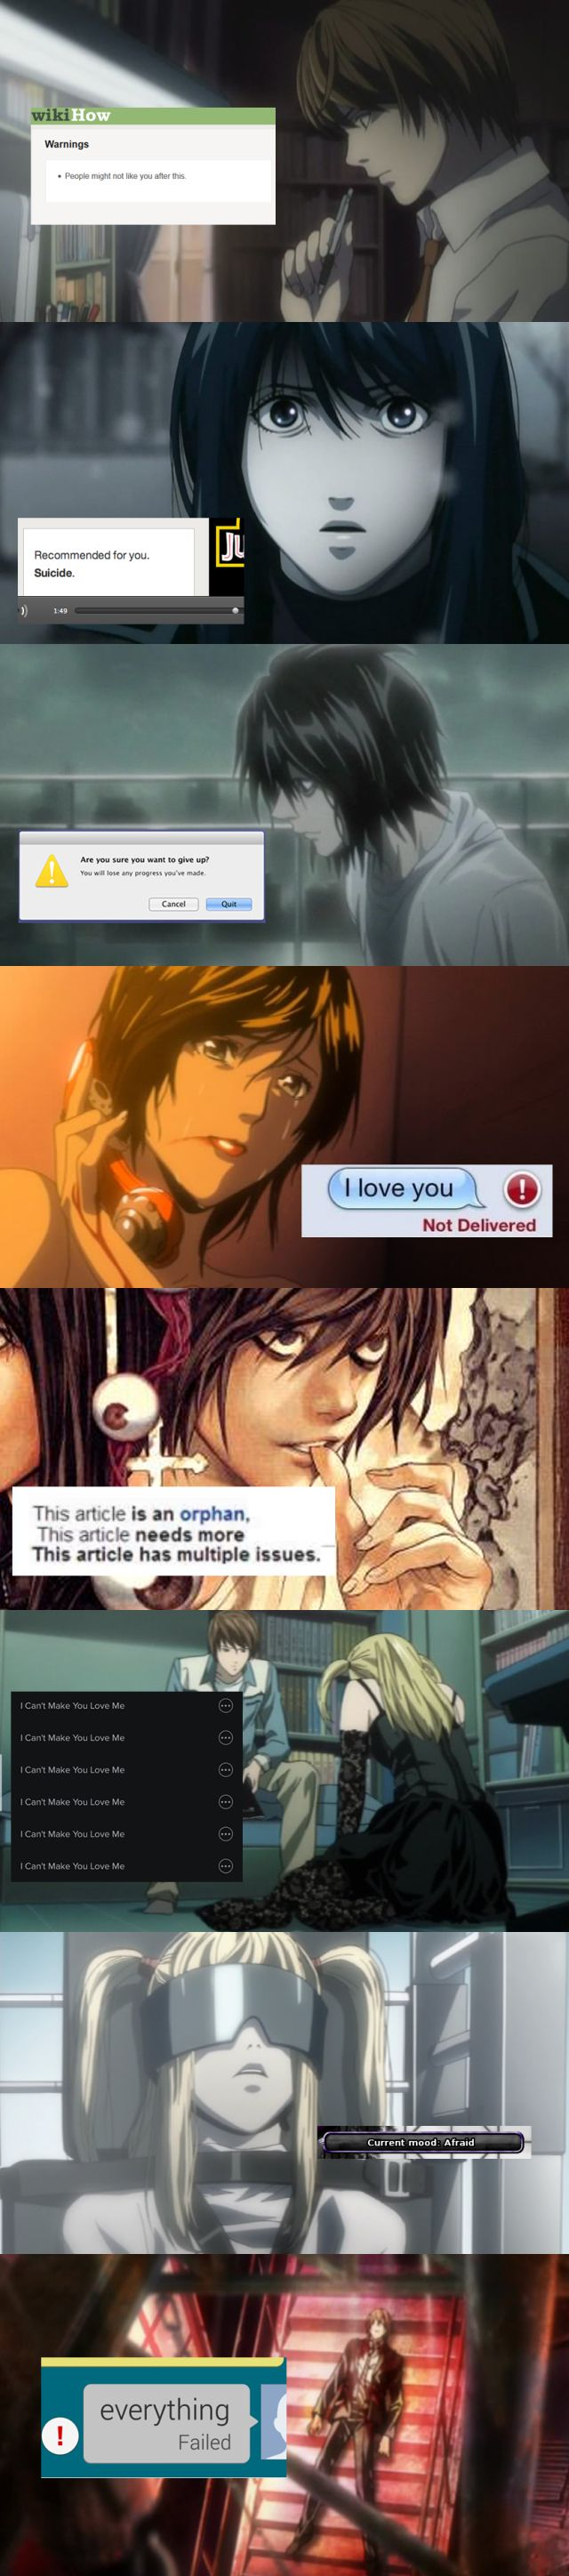 Tags: Death Note Just perfect. I like every piece of the set.